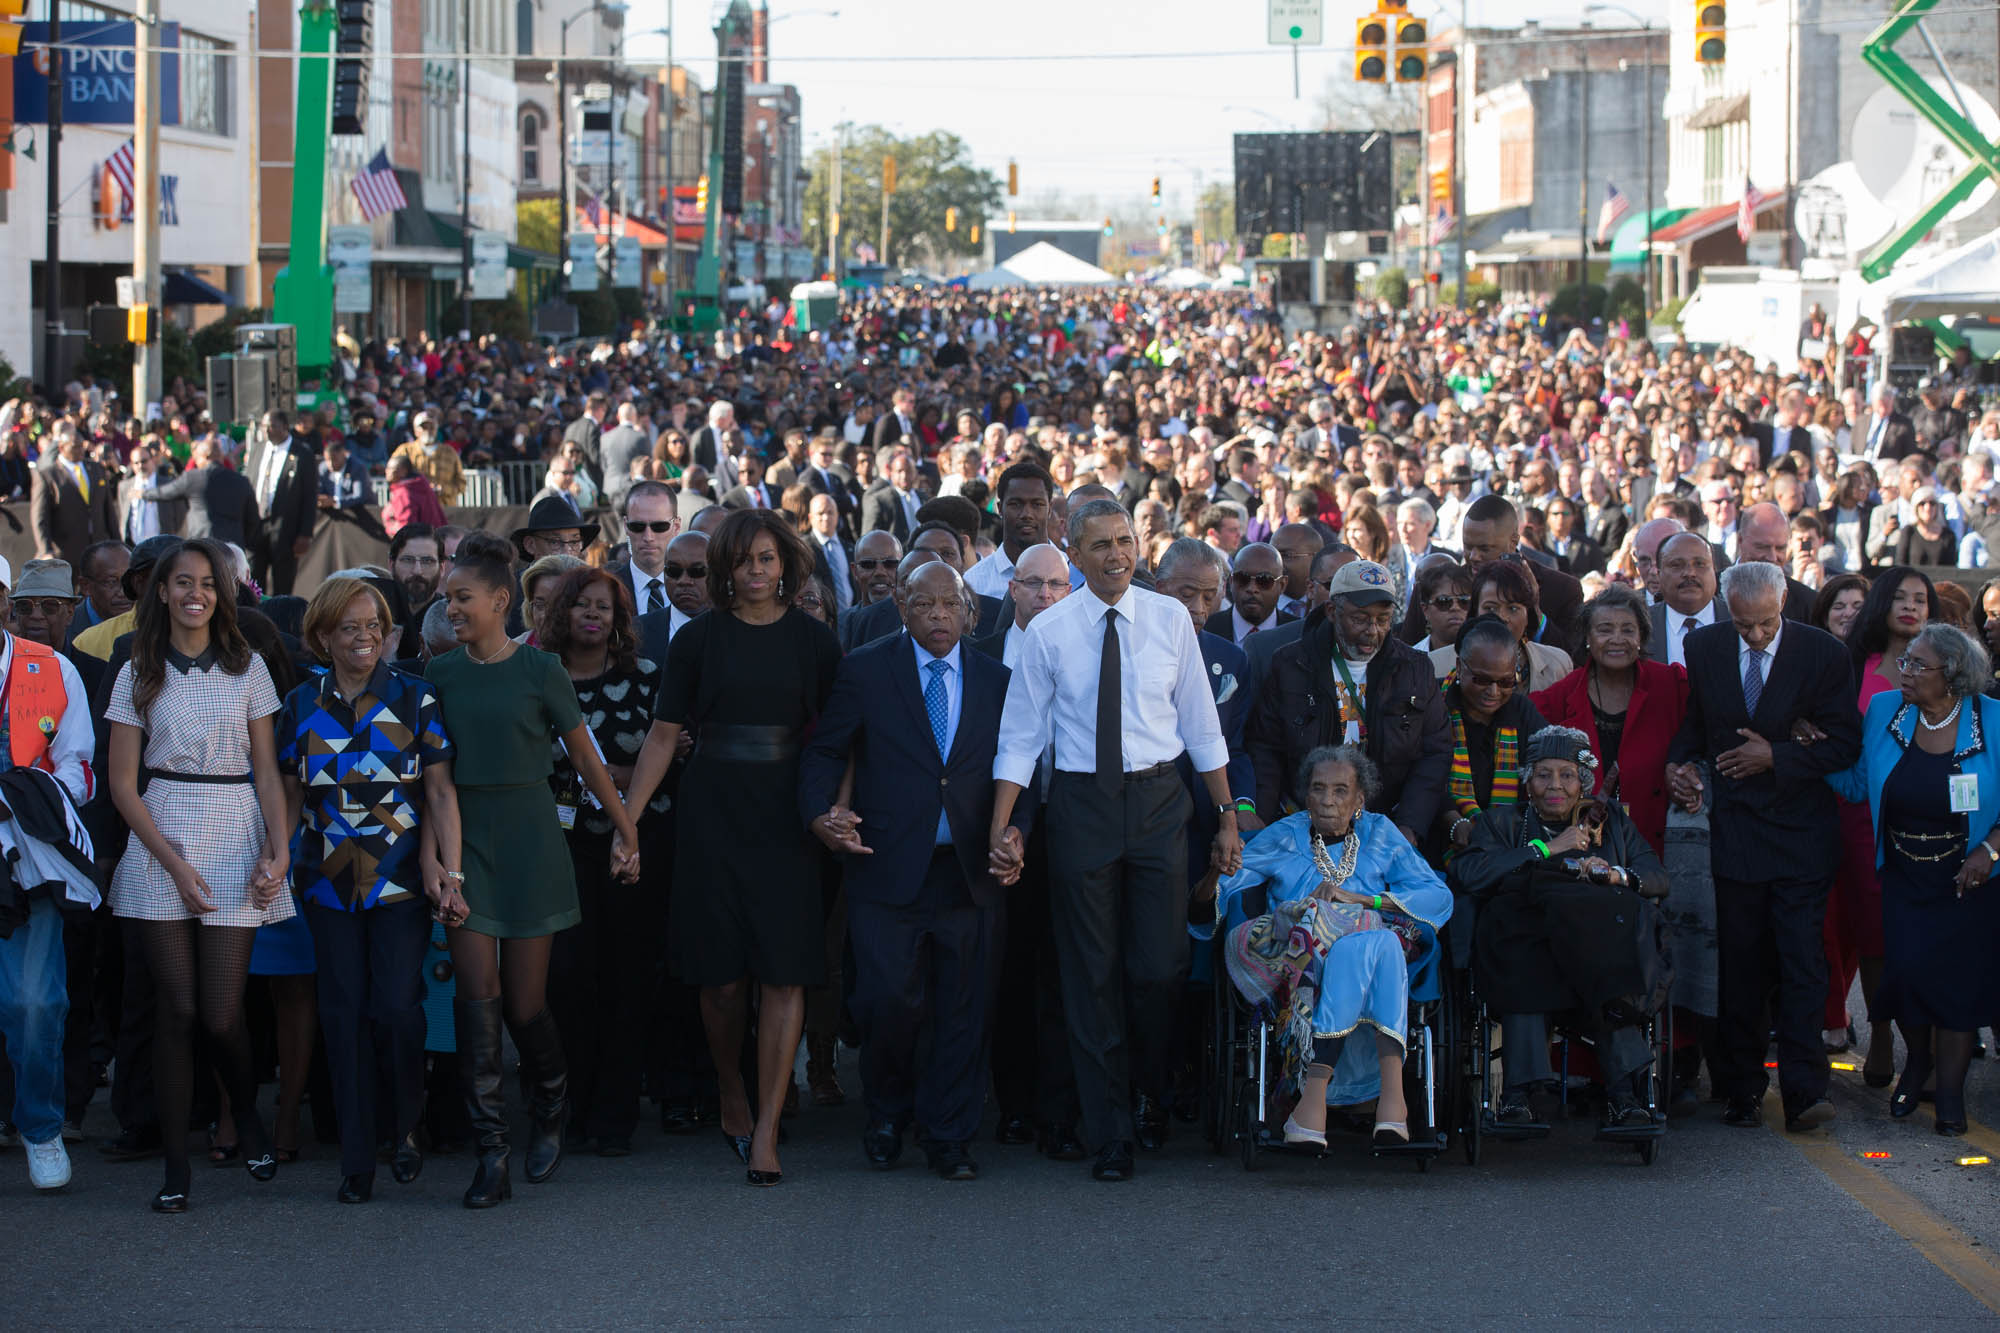 The First Family waits with former President George W. Bush, former First Lady Laura Bush prior to the walking across the Edmund Pettus Bridge